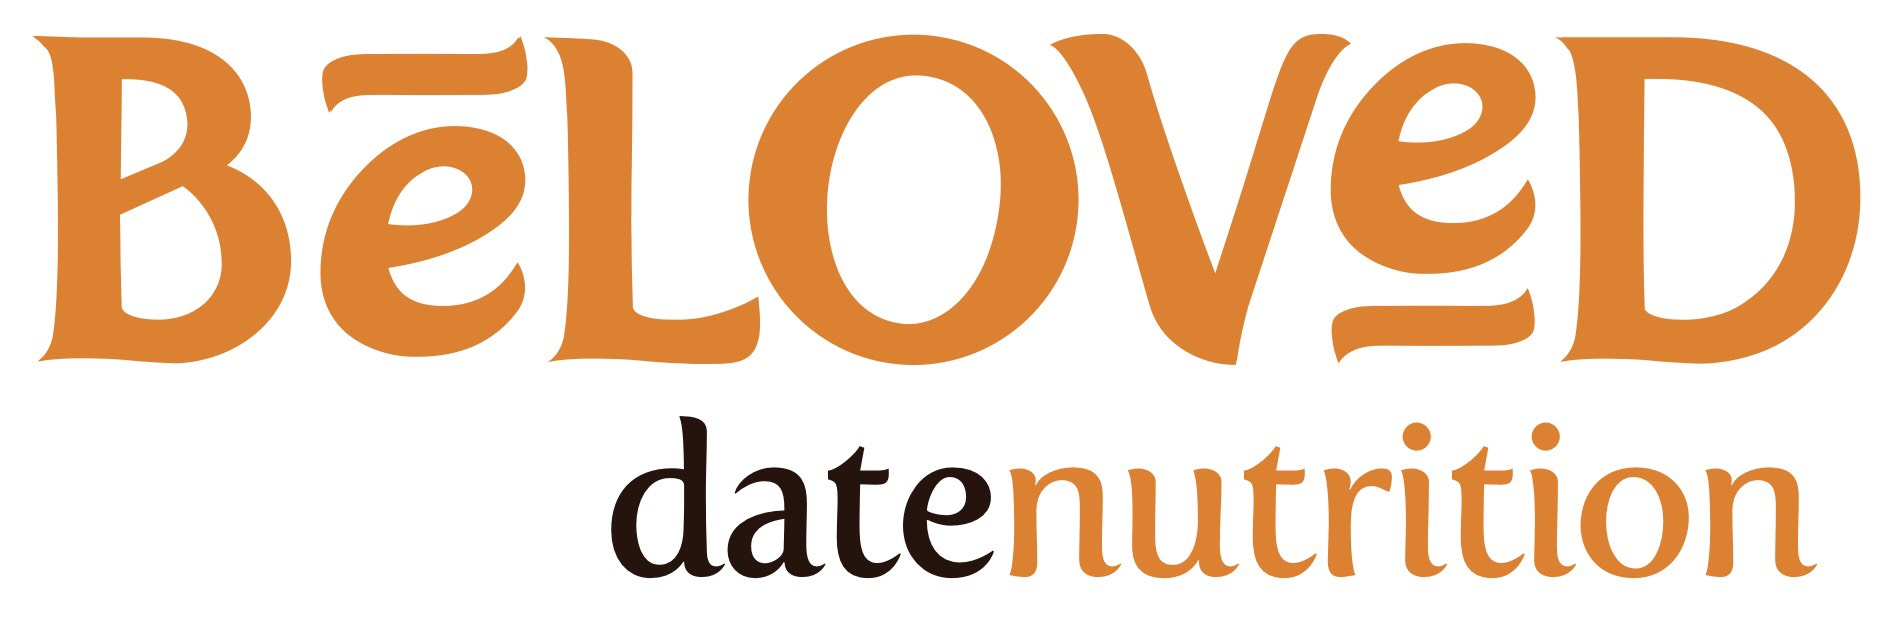 Beloved Date Nutrition